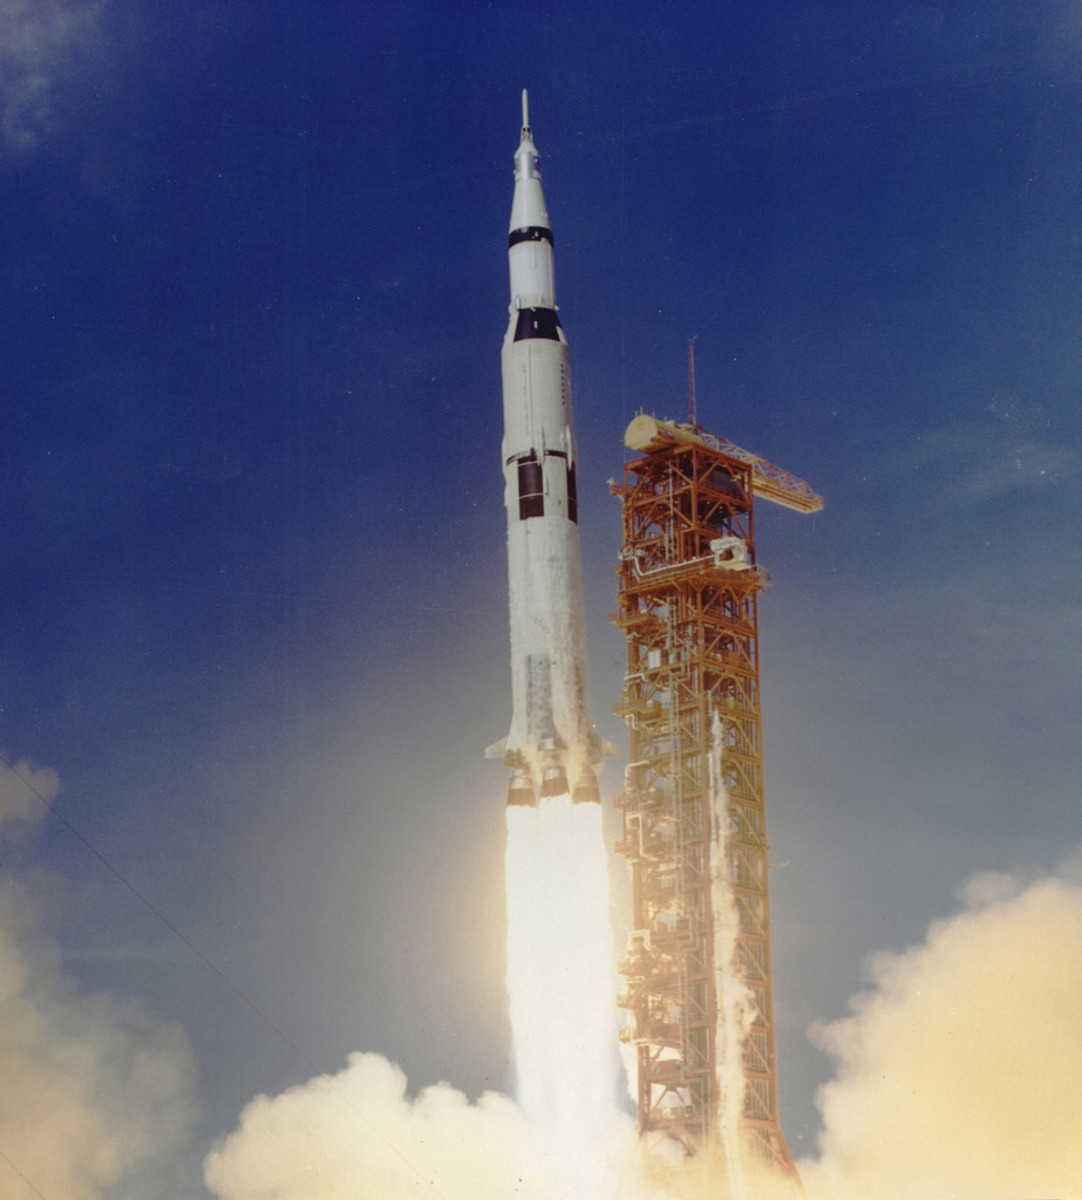 The Apollo 11 mission, the first manned lunar mission, launched from the Kennedy Space Center, Florida via the Marshall Space Flight Center developed Saturn V launch vehicle on July 16, 1969 and safely returned to Earth on July 24, 1969.